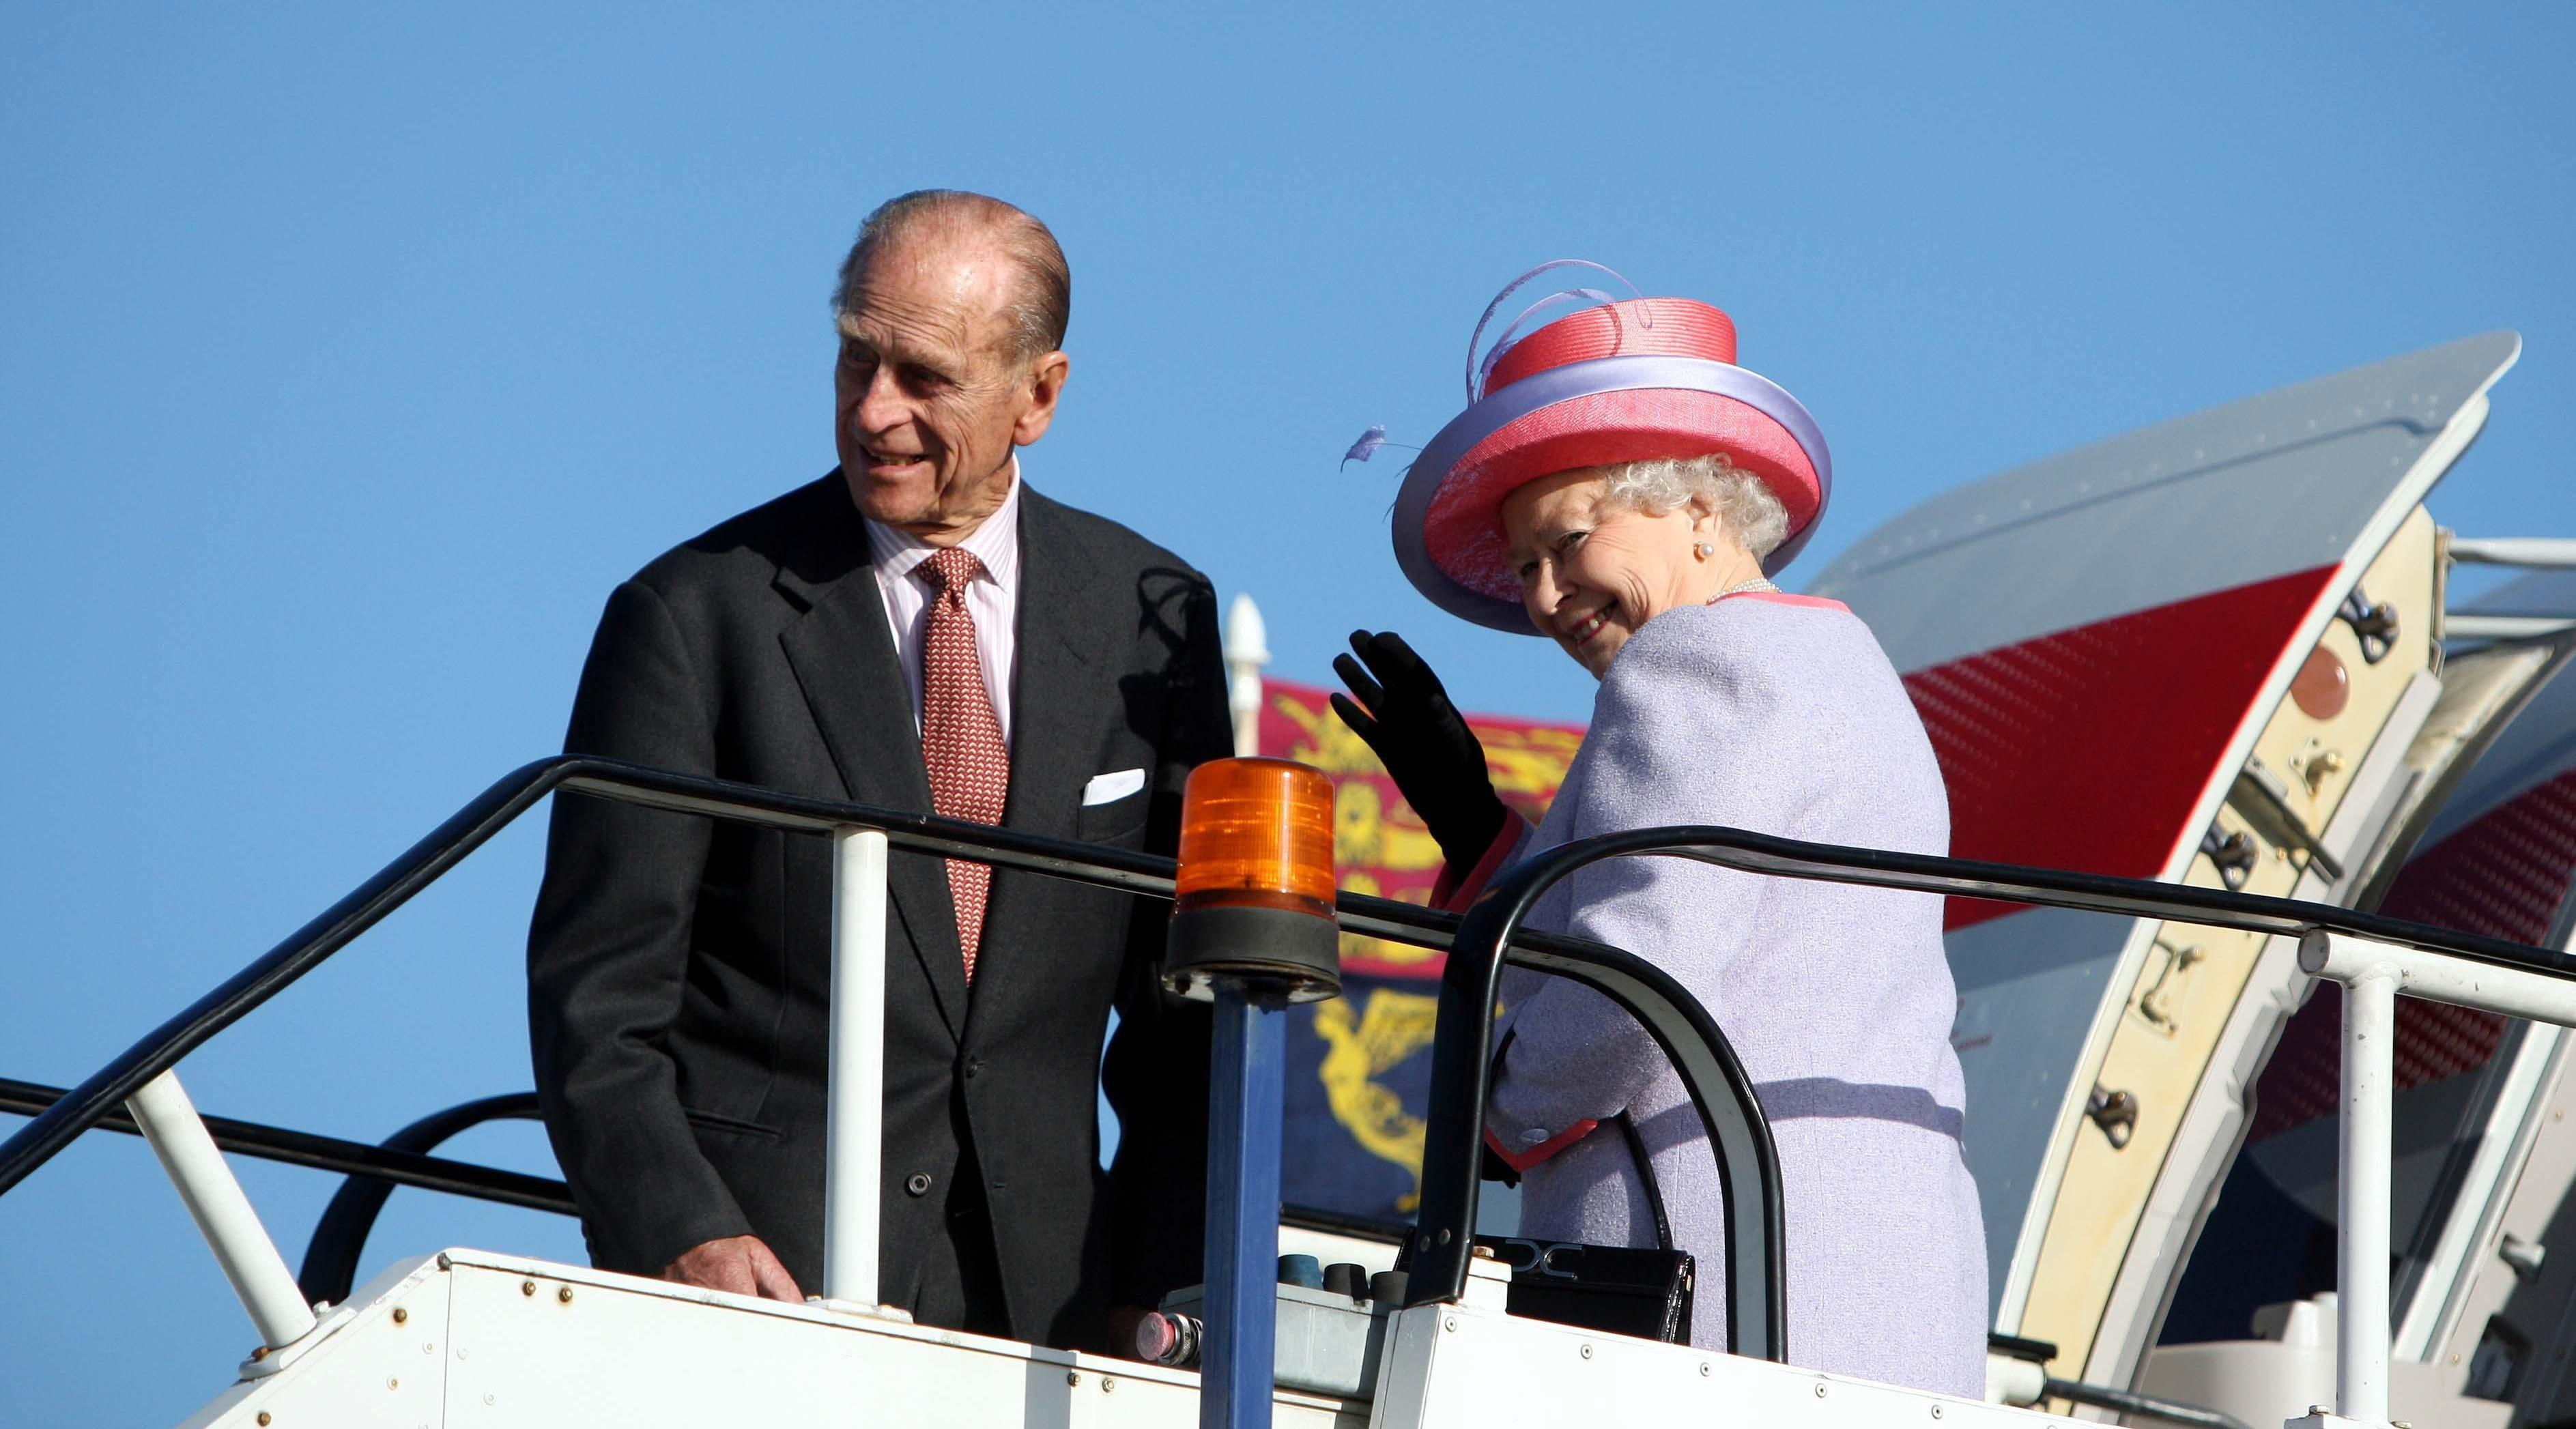 The Queen, Charles and William always 'travel with a bag of their blood'